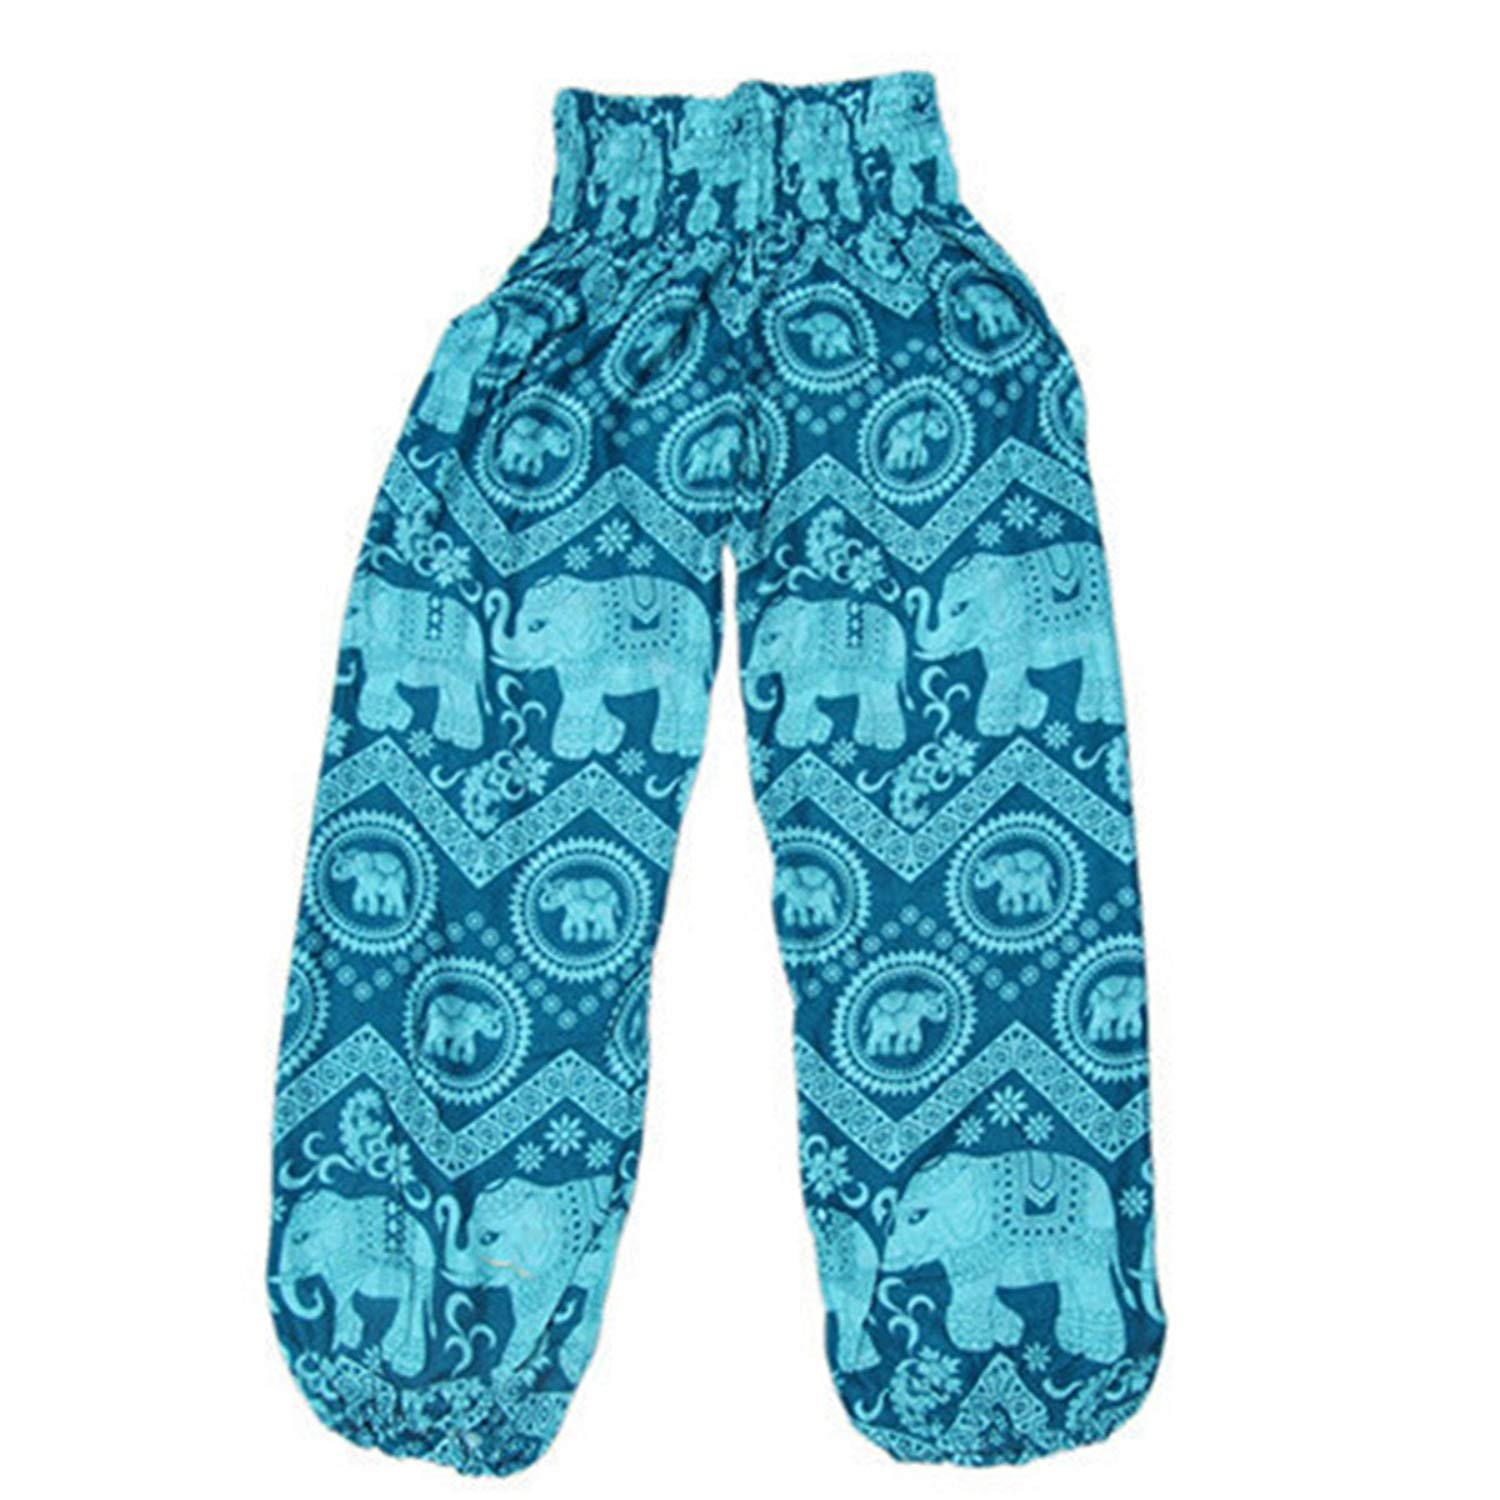 c8f34be0169 Get Quotations · Chiced Yoga Pants India Nepal Elephant Male Female Summer  Loose Poplin Knickerbocker High-Waisted Pants